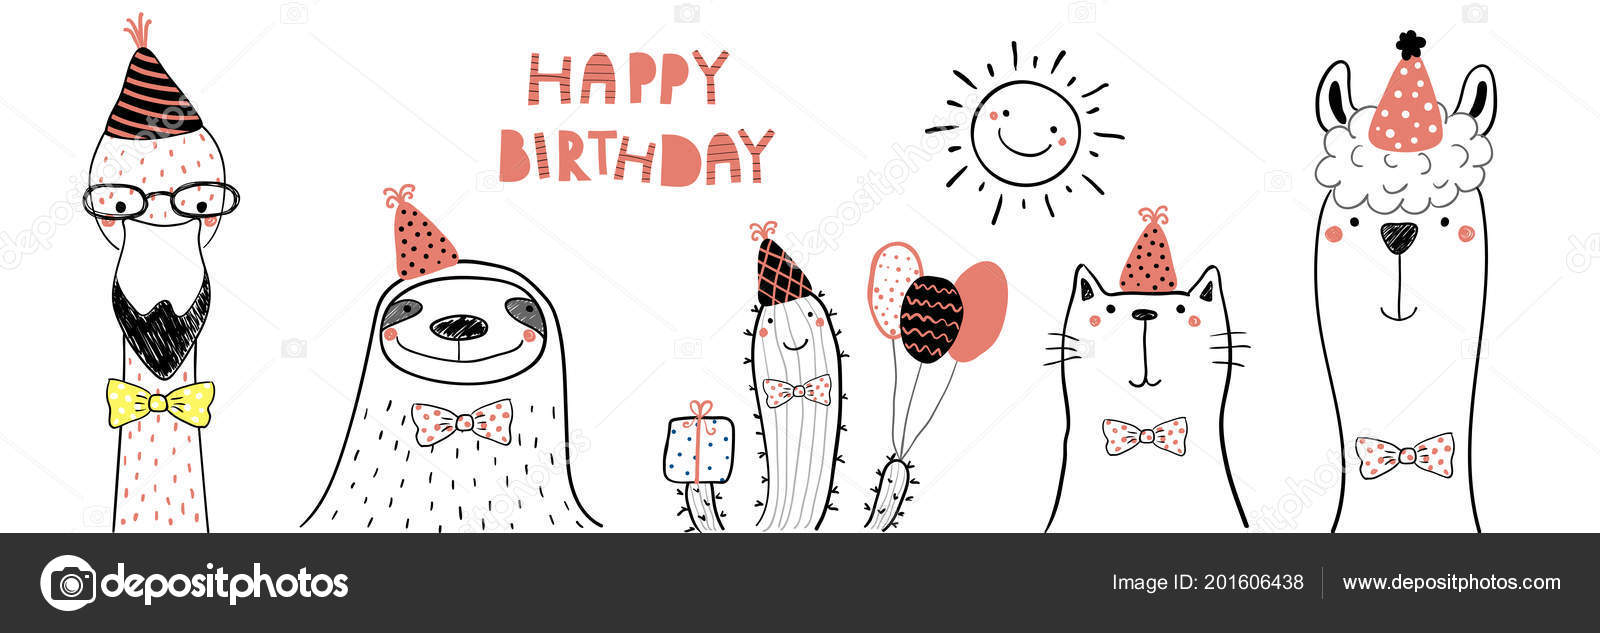 Hand Drawn Birthday Card With Cute Funny Flamingo And Sloth Cat Llama In Party Hats Lettering Quote Happy Design Concept For Children